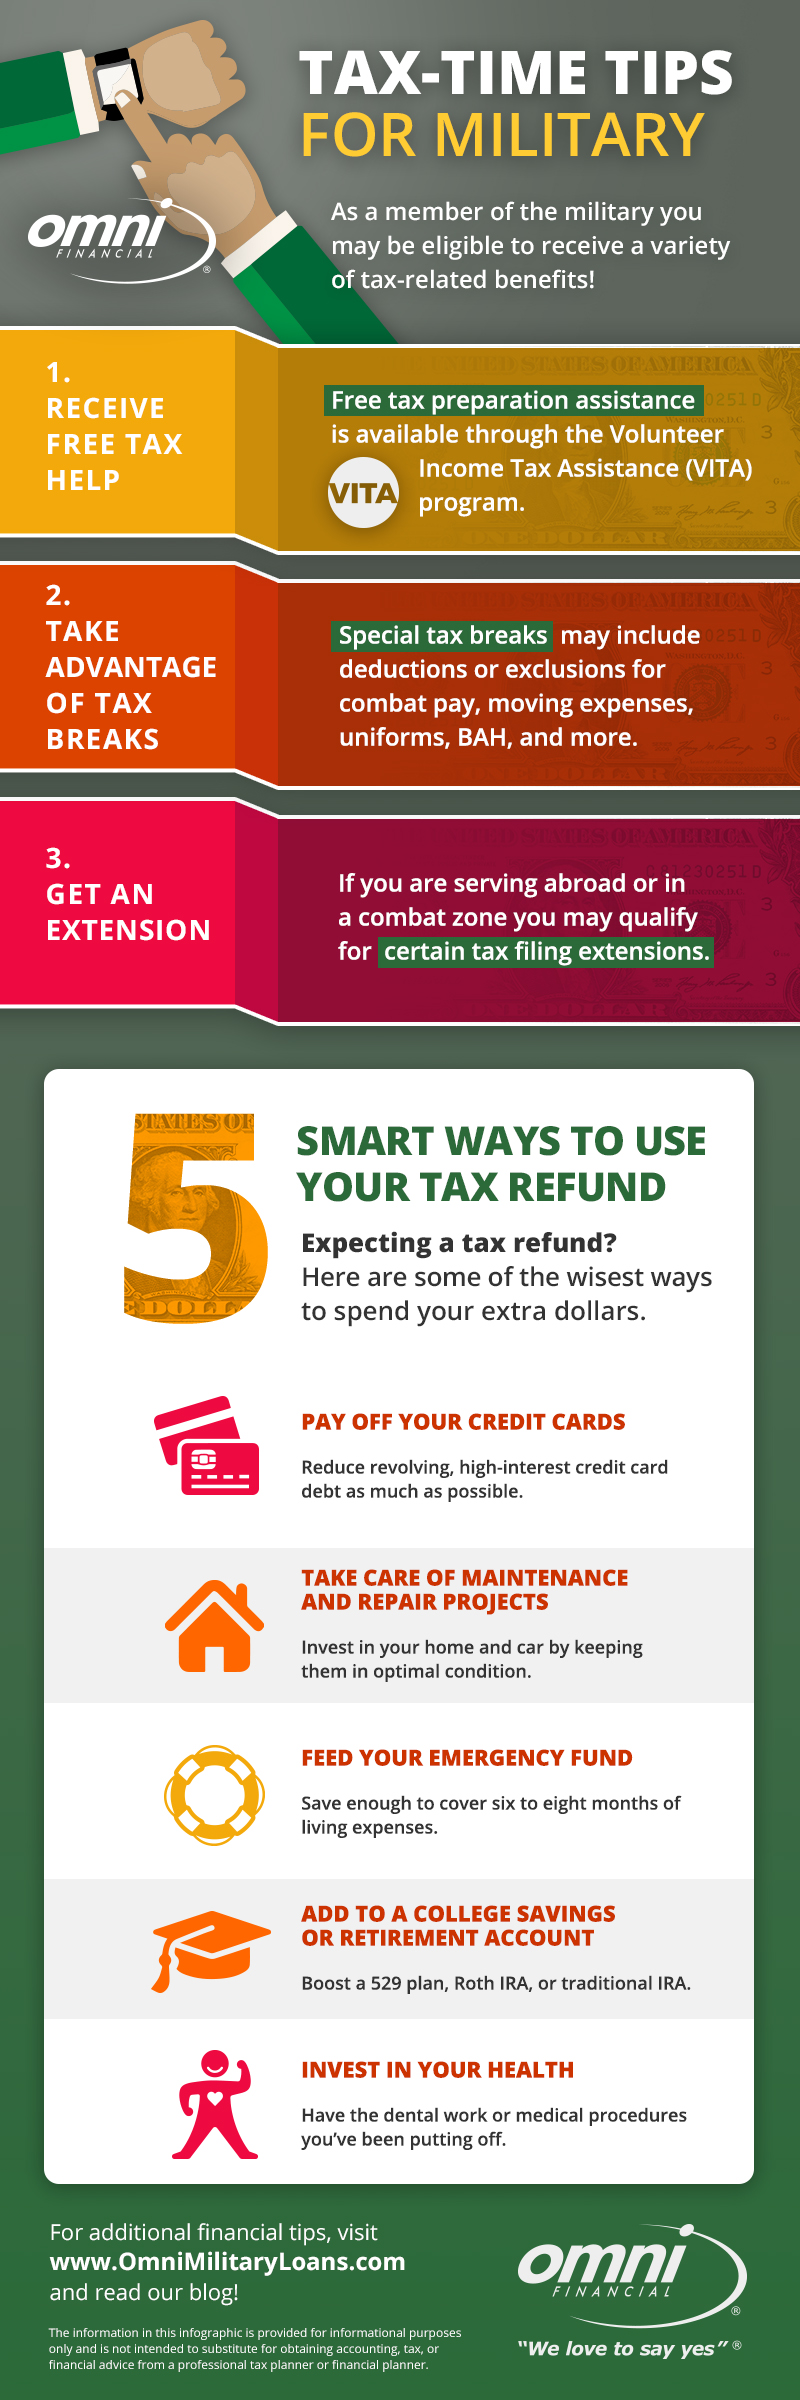 Tax-Related Tips for Military Infographic